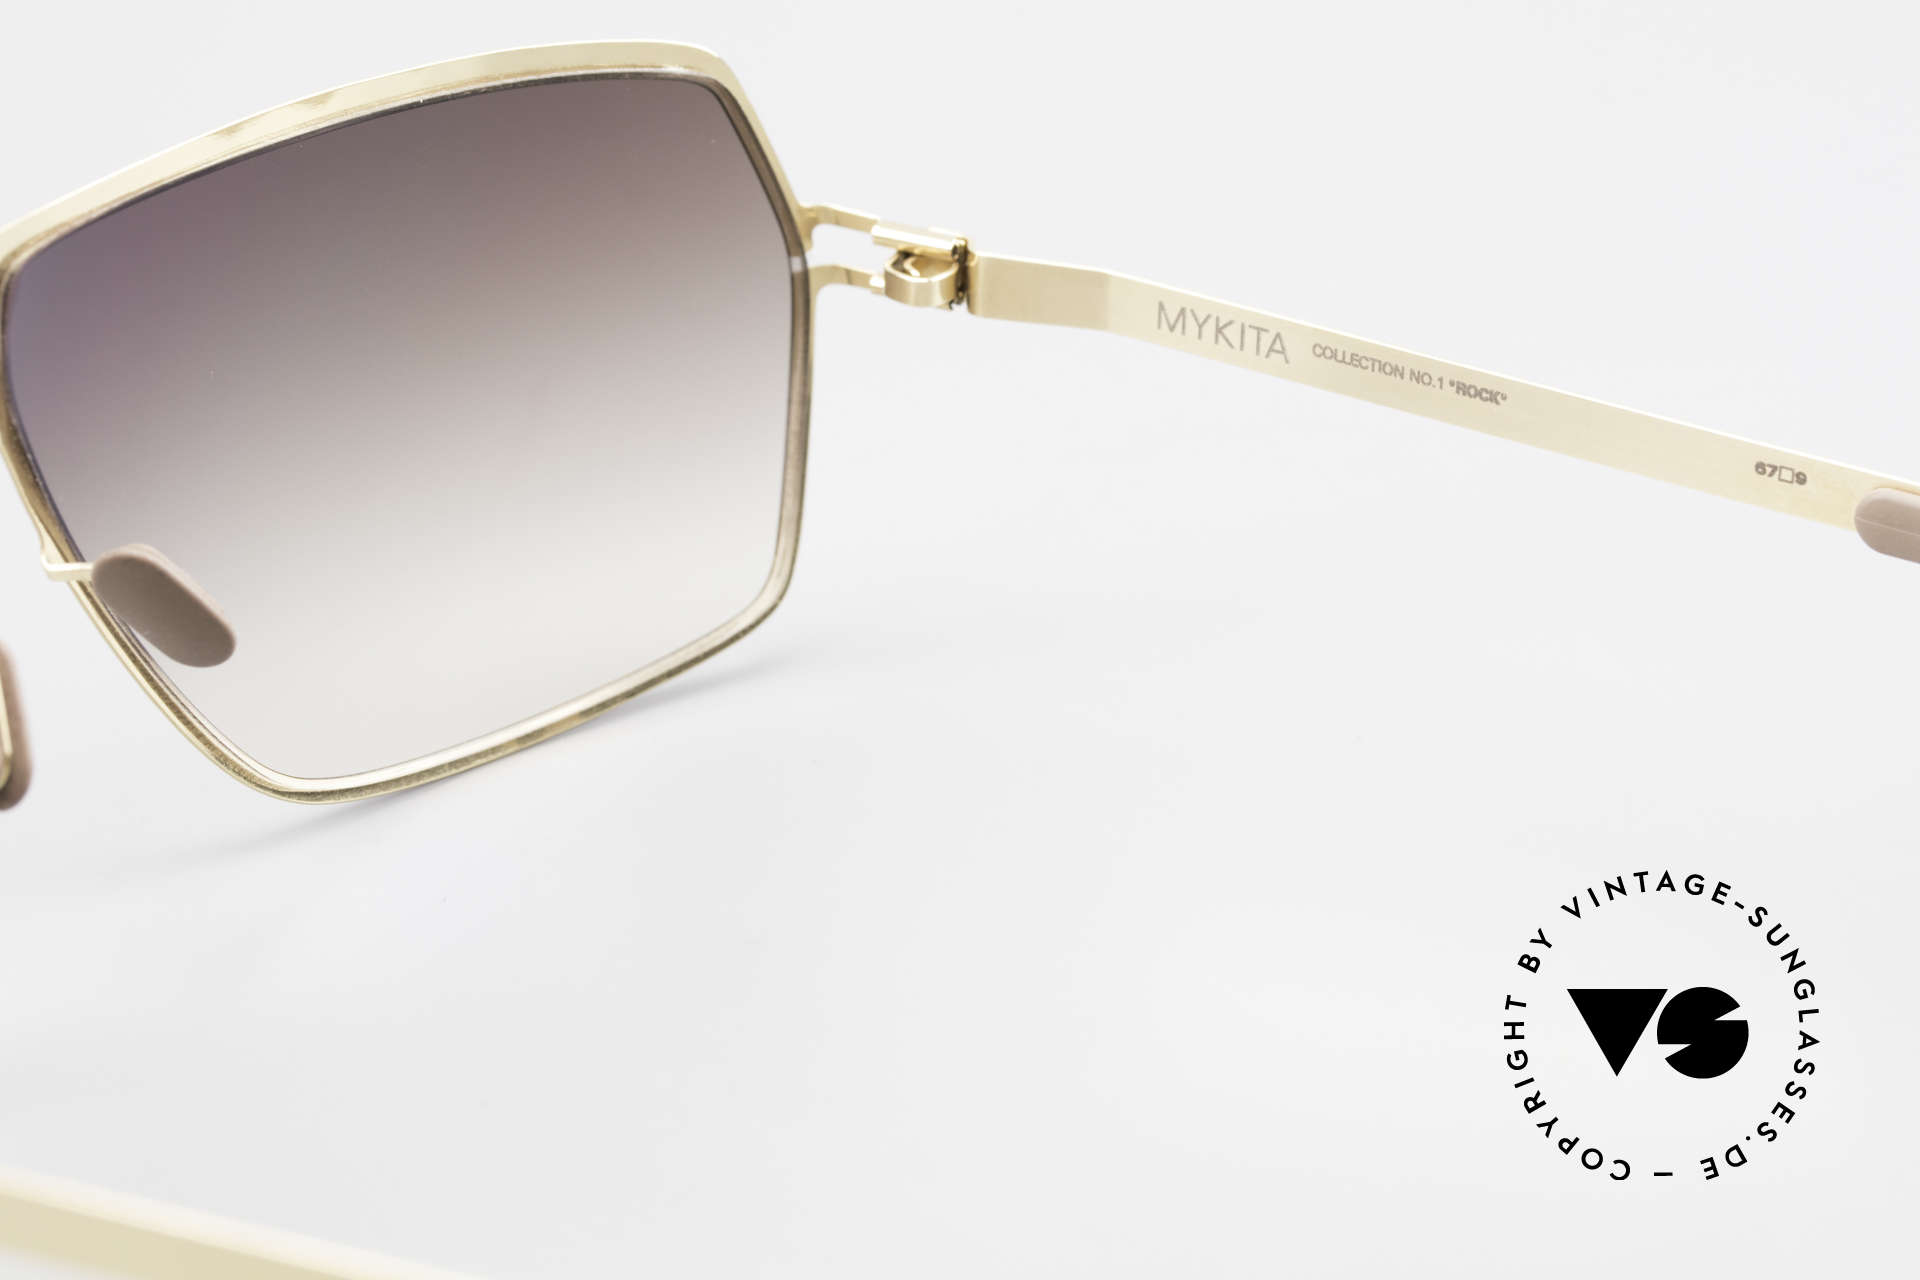 Mykita Rock Vintage No 1 Collection 2009, thus, now available from us (unworn and with orig. case), Made for Men